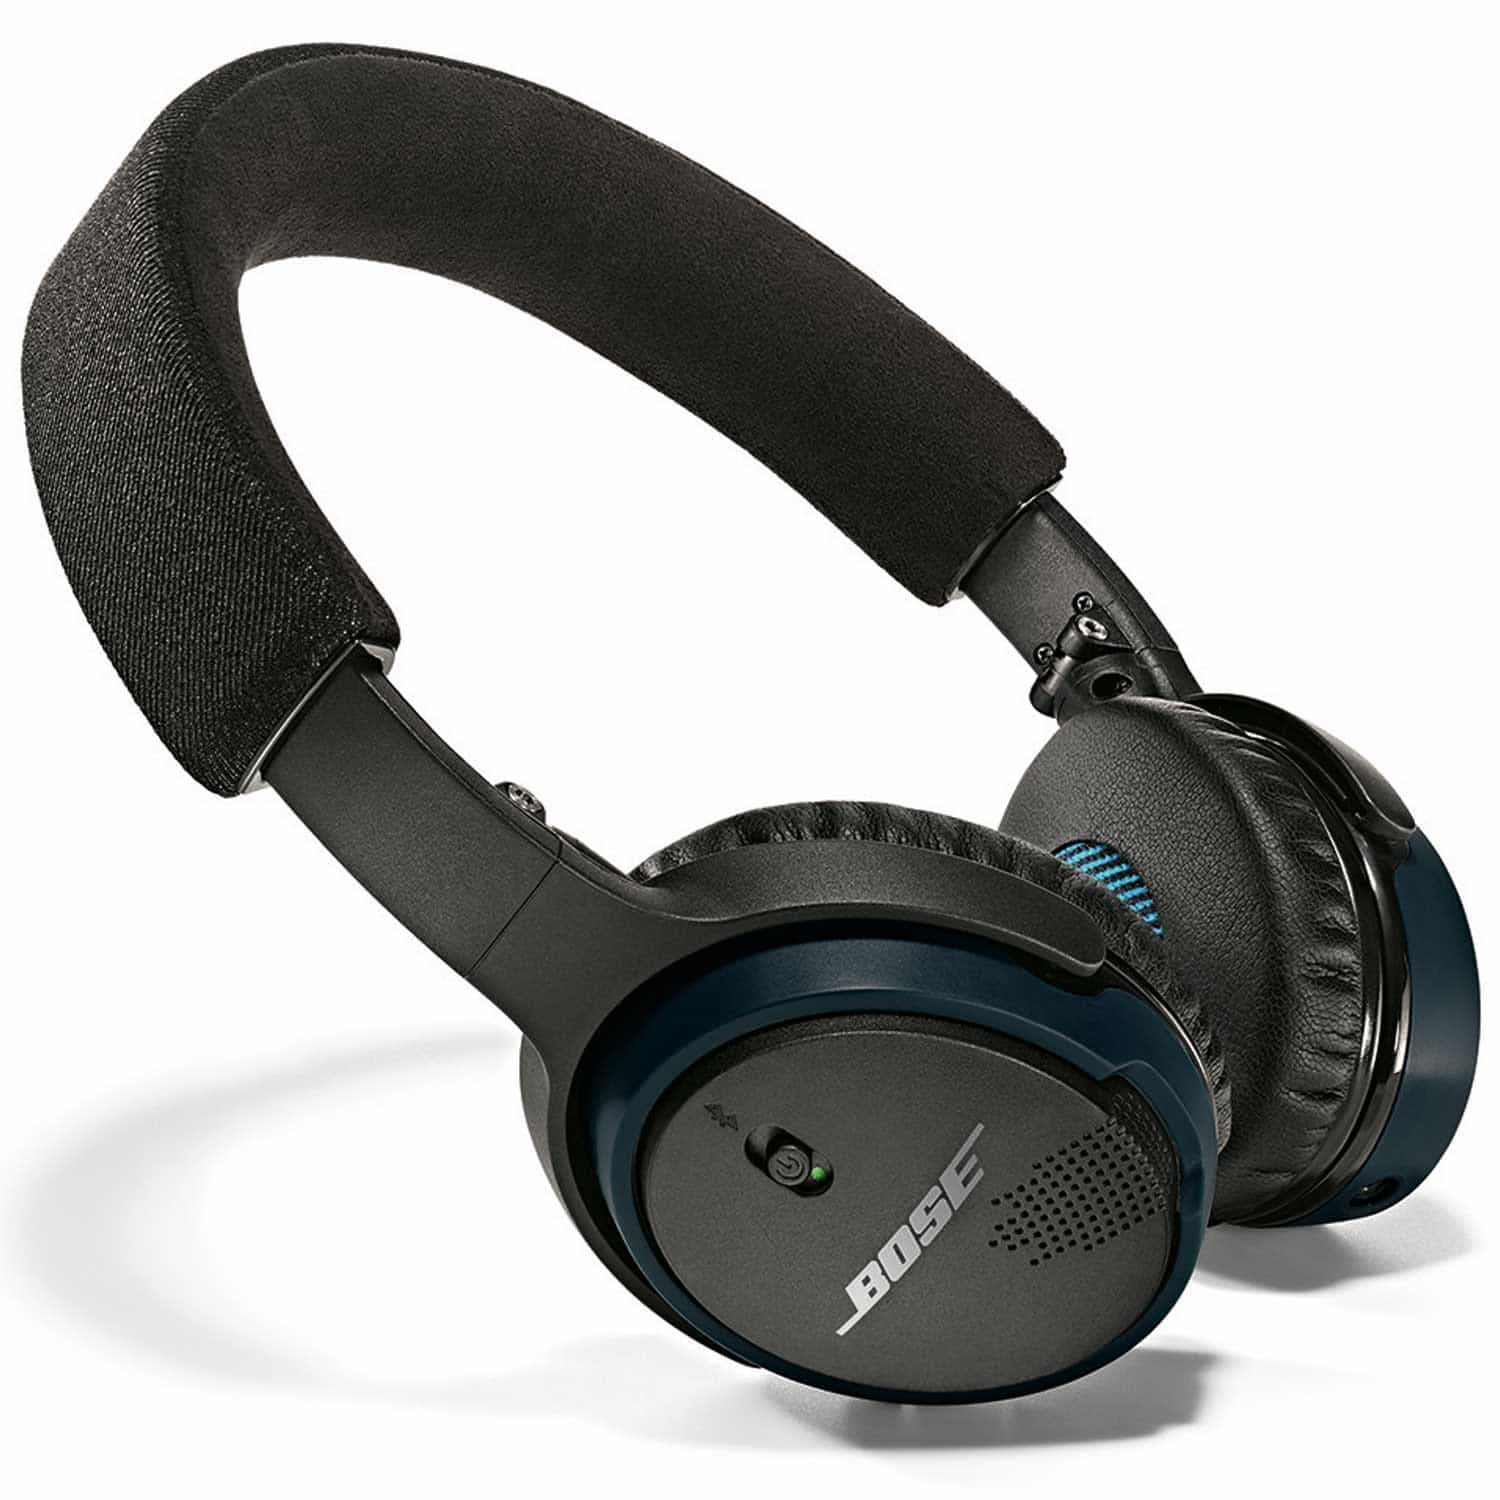 Top 10 Best Wireless Mp3 Headphones In 2018 Grado Wiring Diagram The Noise Cancelling